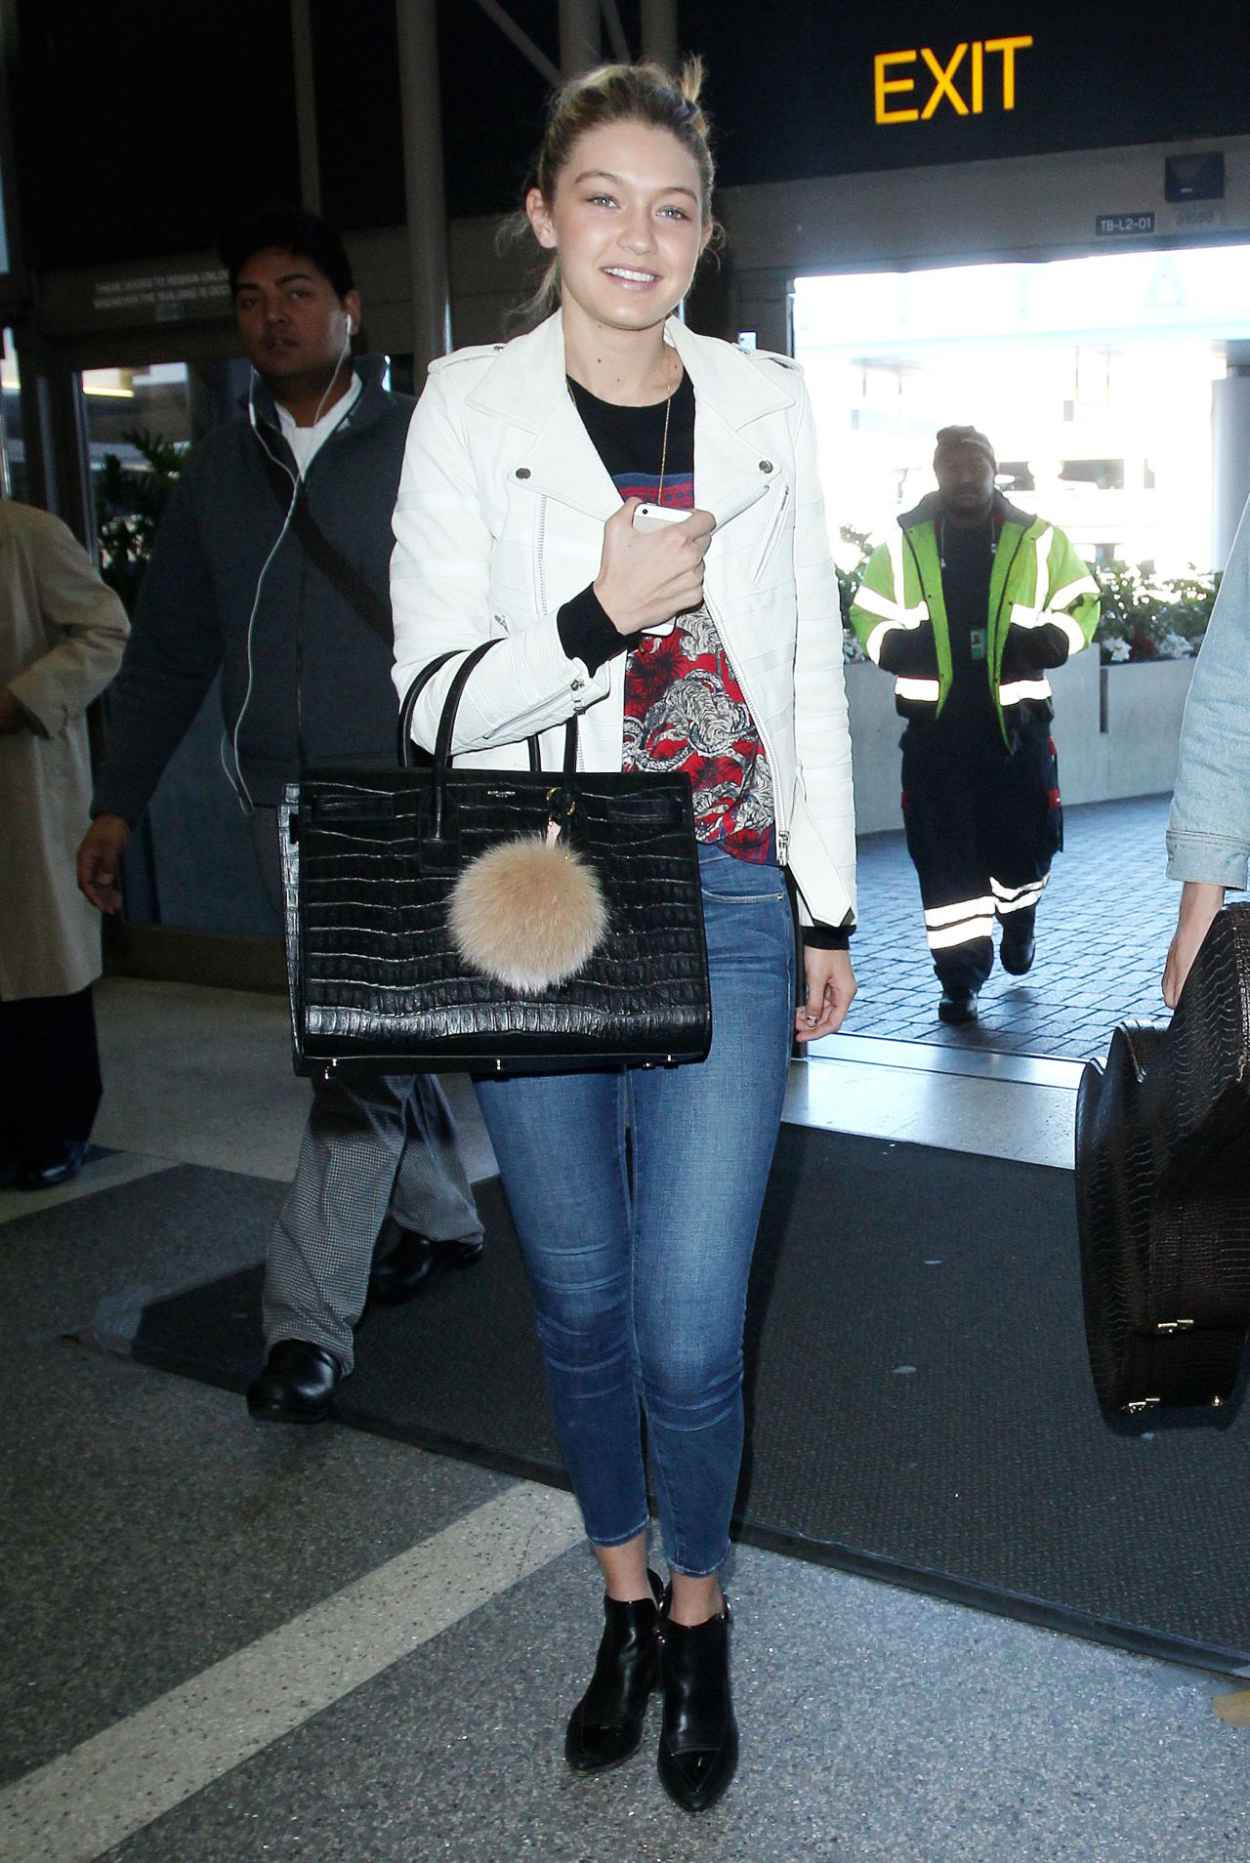 Gigi Hadid in Tight Jeans - at LAX Airport in Los Angeles, Dec. 2015-1